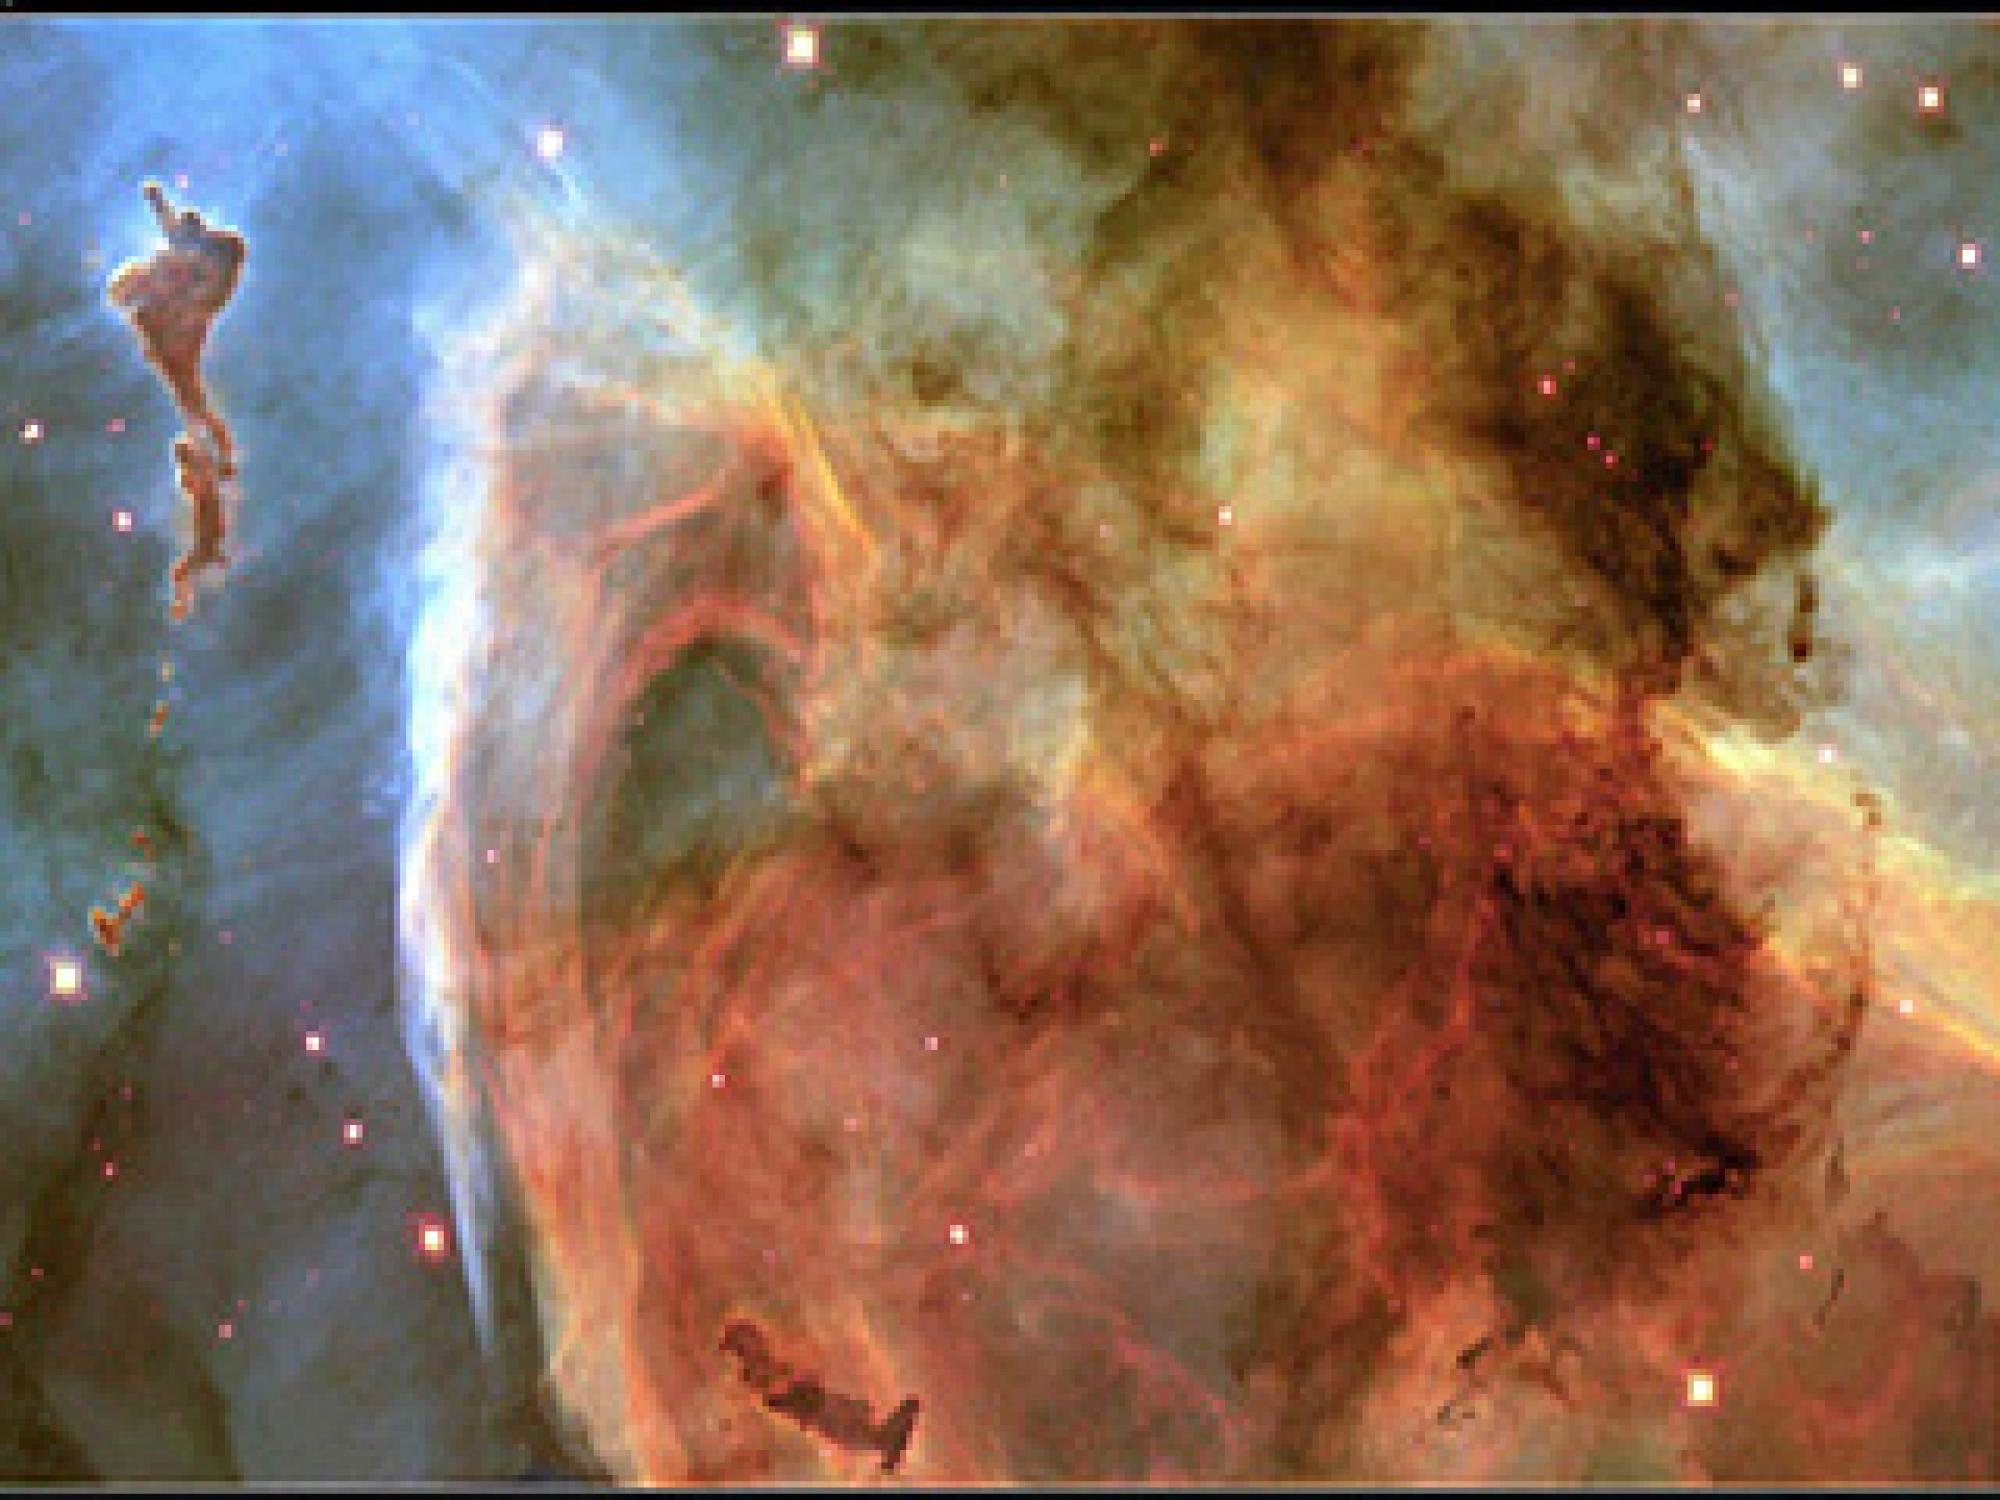 It is in dense clouds of interstellar dust, gas and ice like the Carina Nebula that new stars and planetary systems are formed.